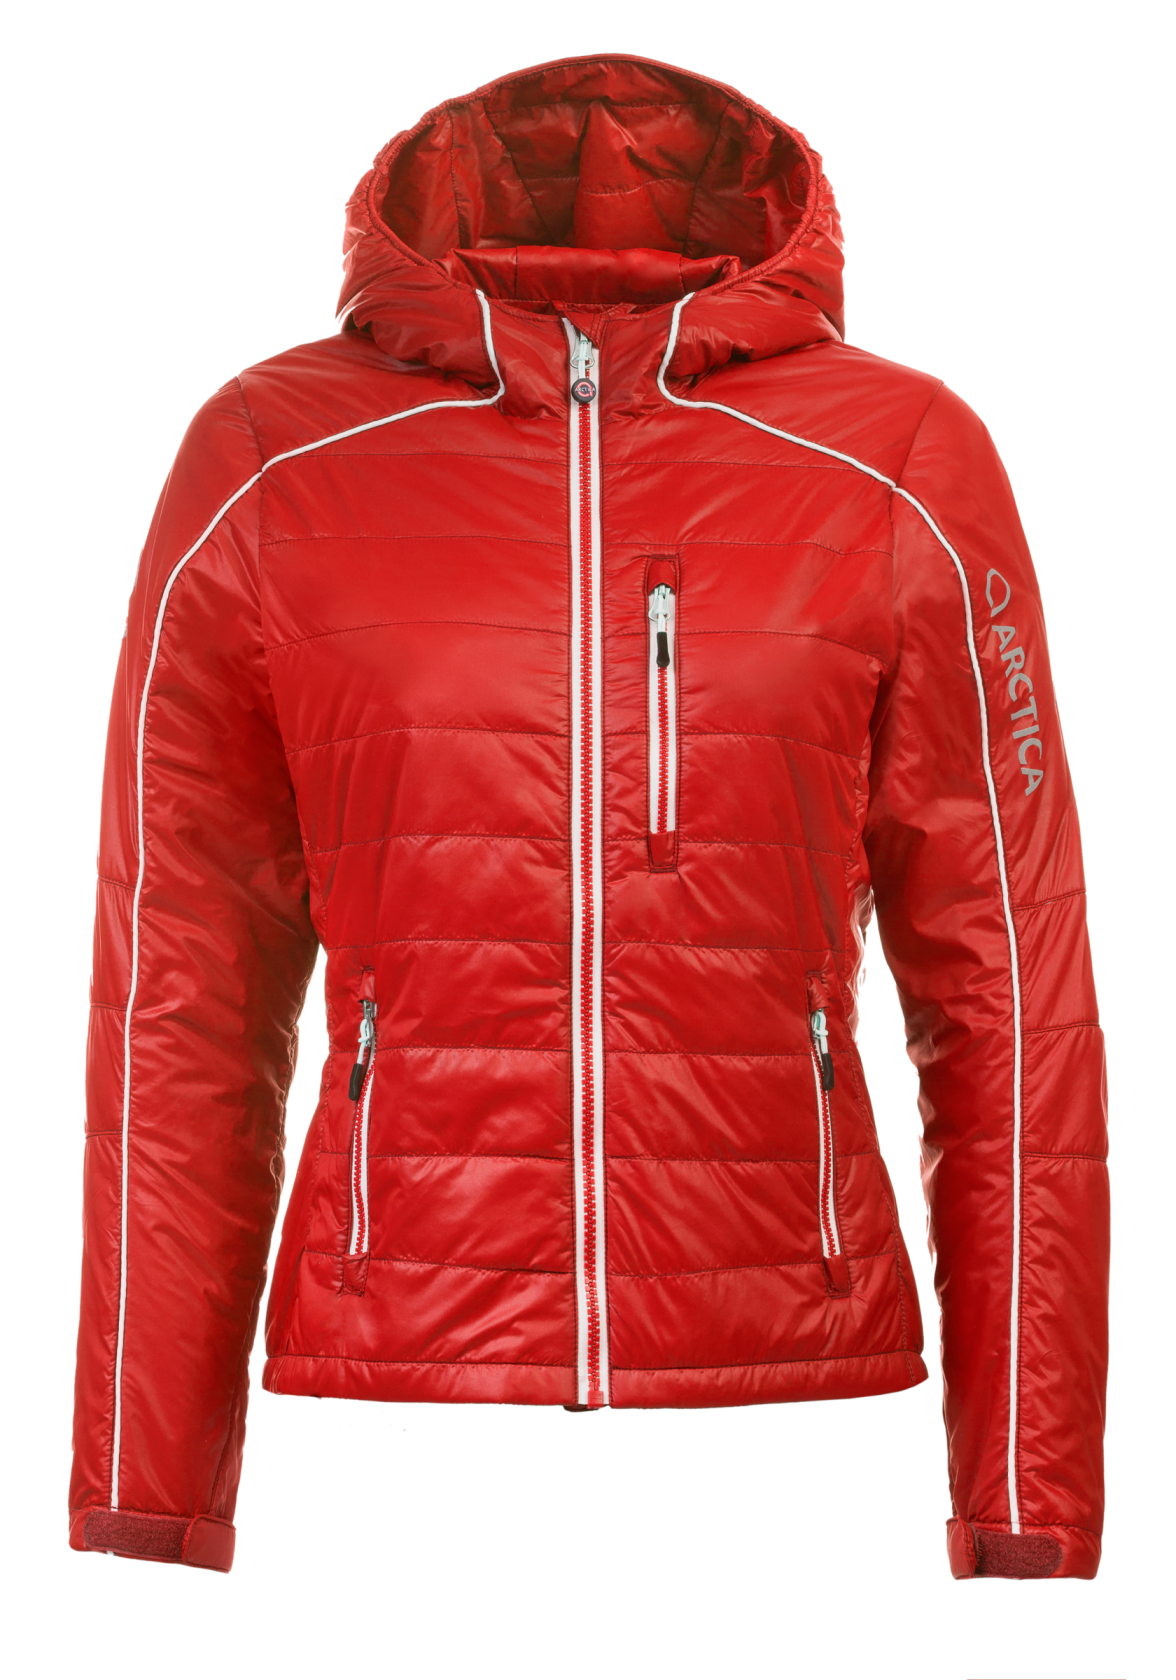 gw024w-red-front